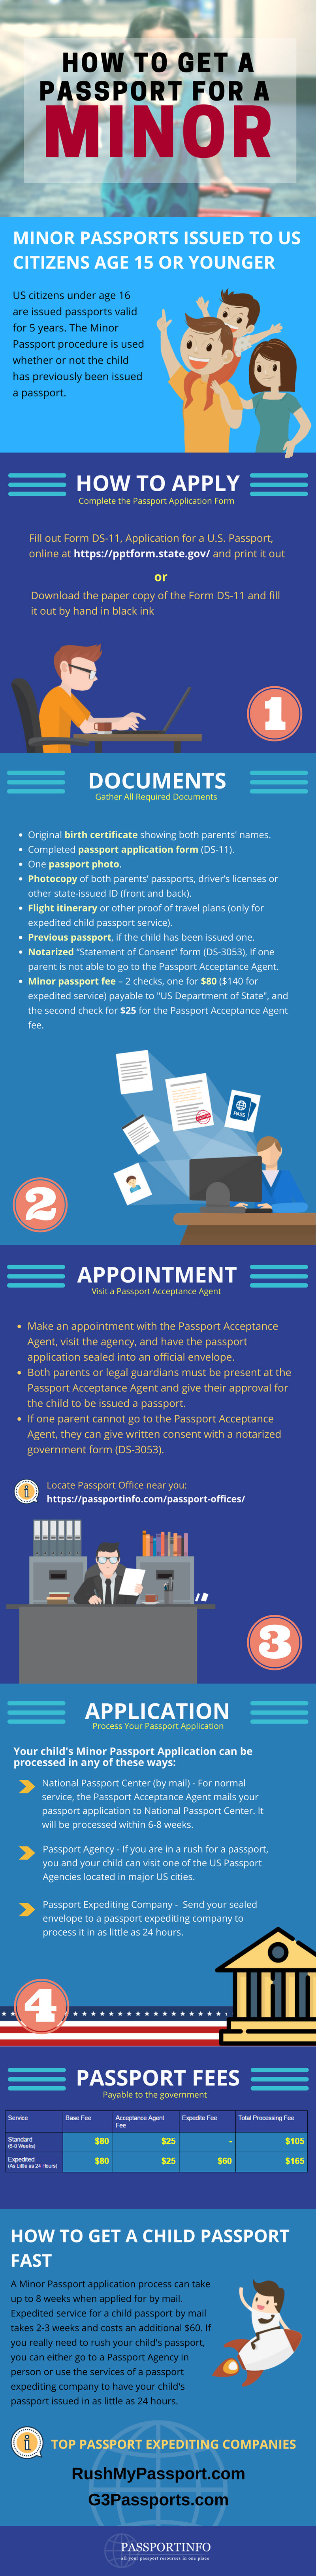 requirements for passport application for minors